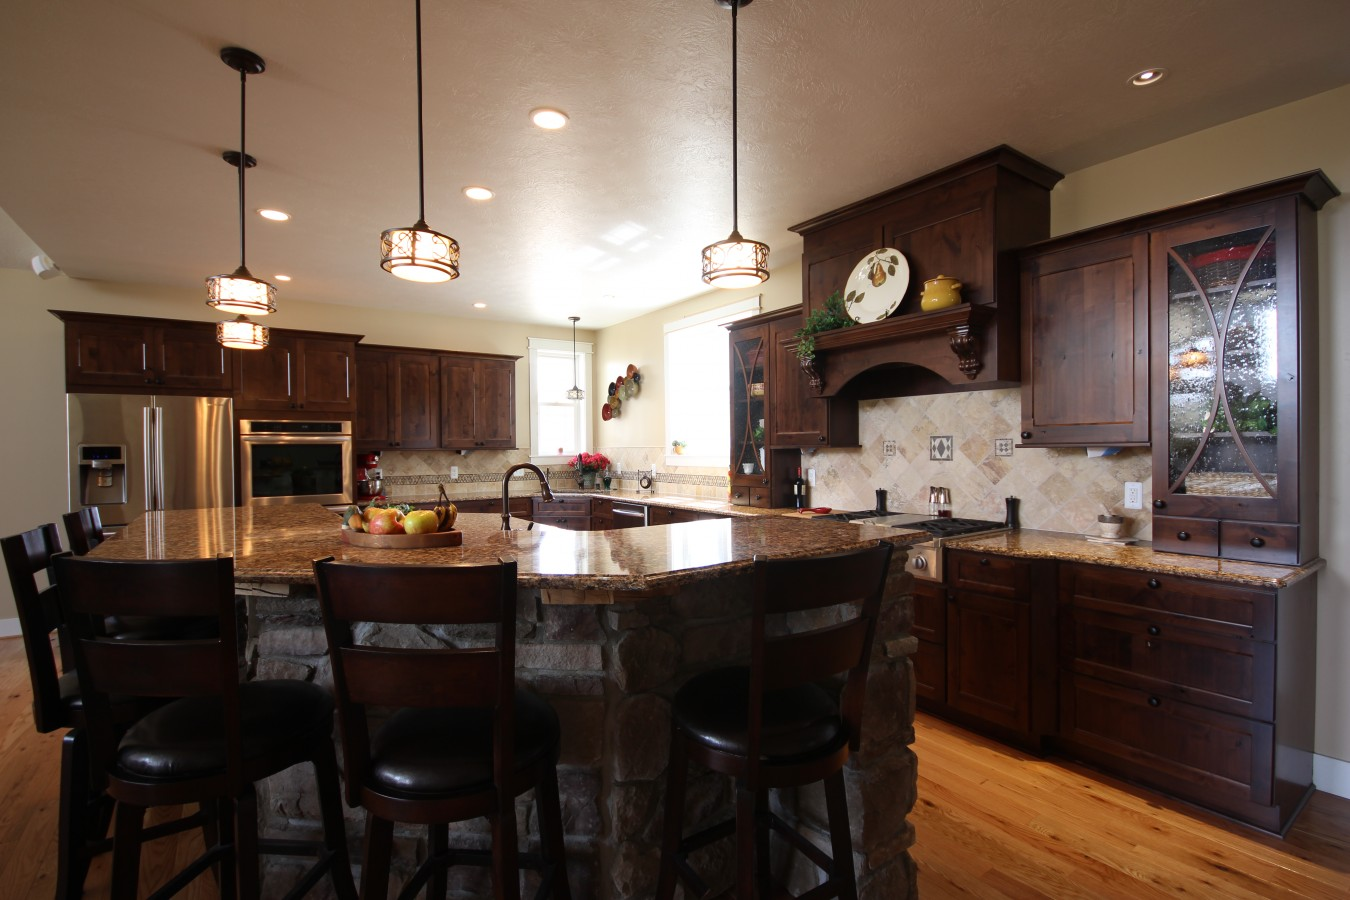 Dream Kitchen Dream Kitchens  South Eastern Michigan's Premiere Kitchen Design Firm